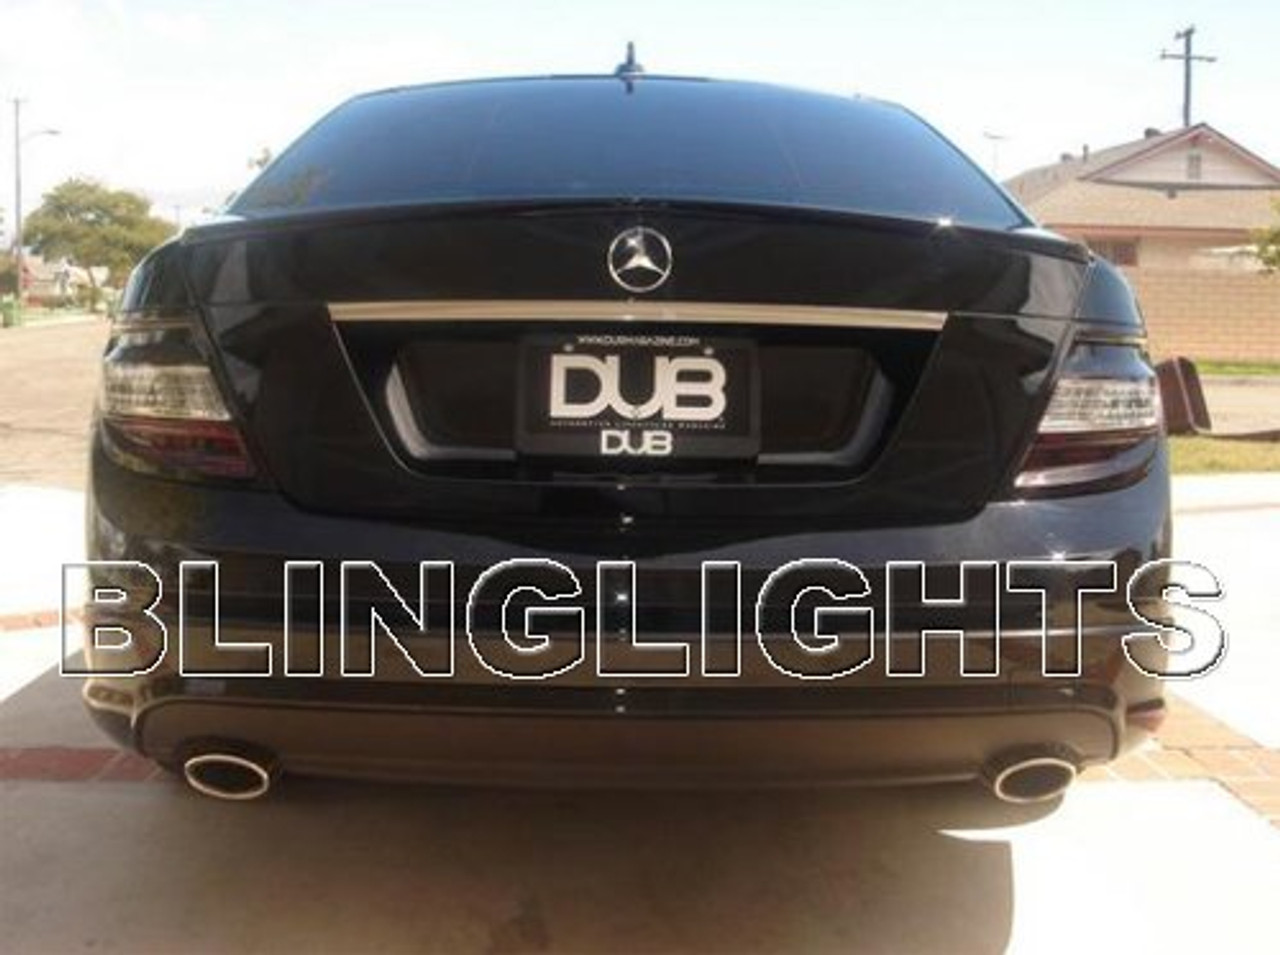 2008 2009 2010 2011 mercedes c300 smoked taillamps taillights tail lamps lights tint film overlays